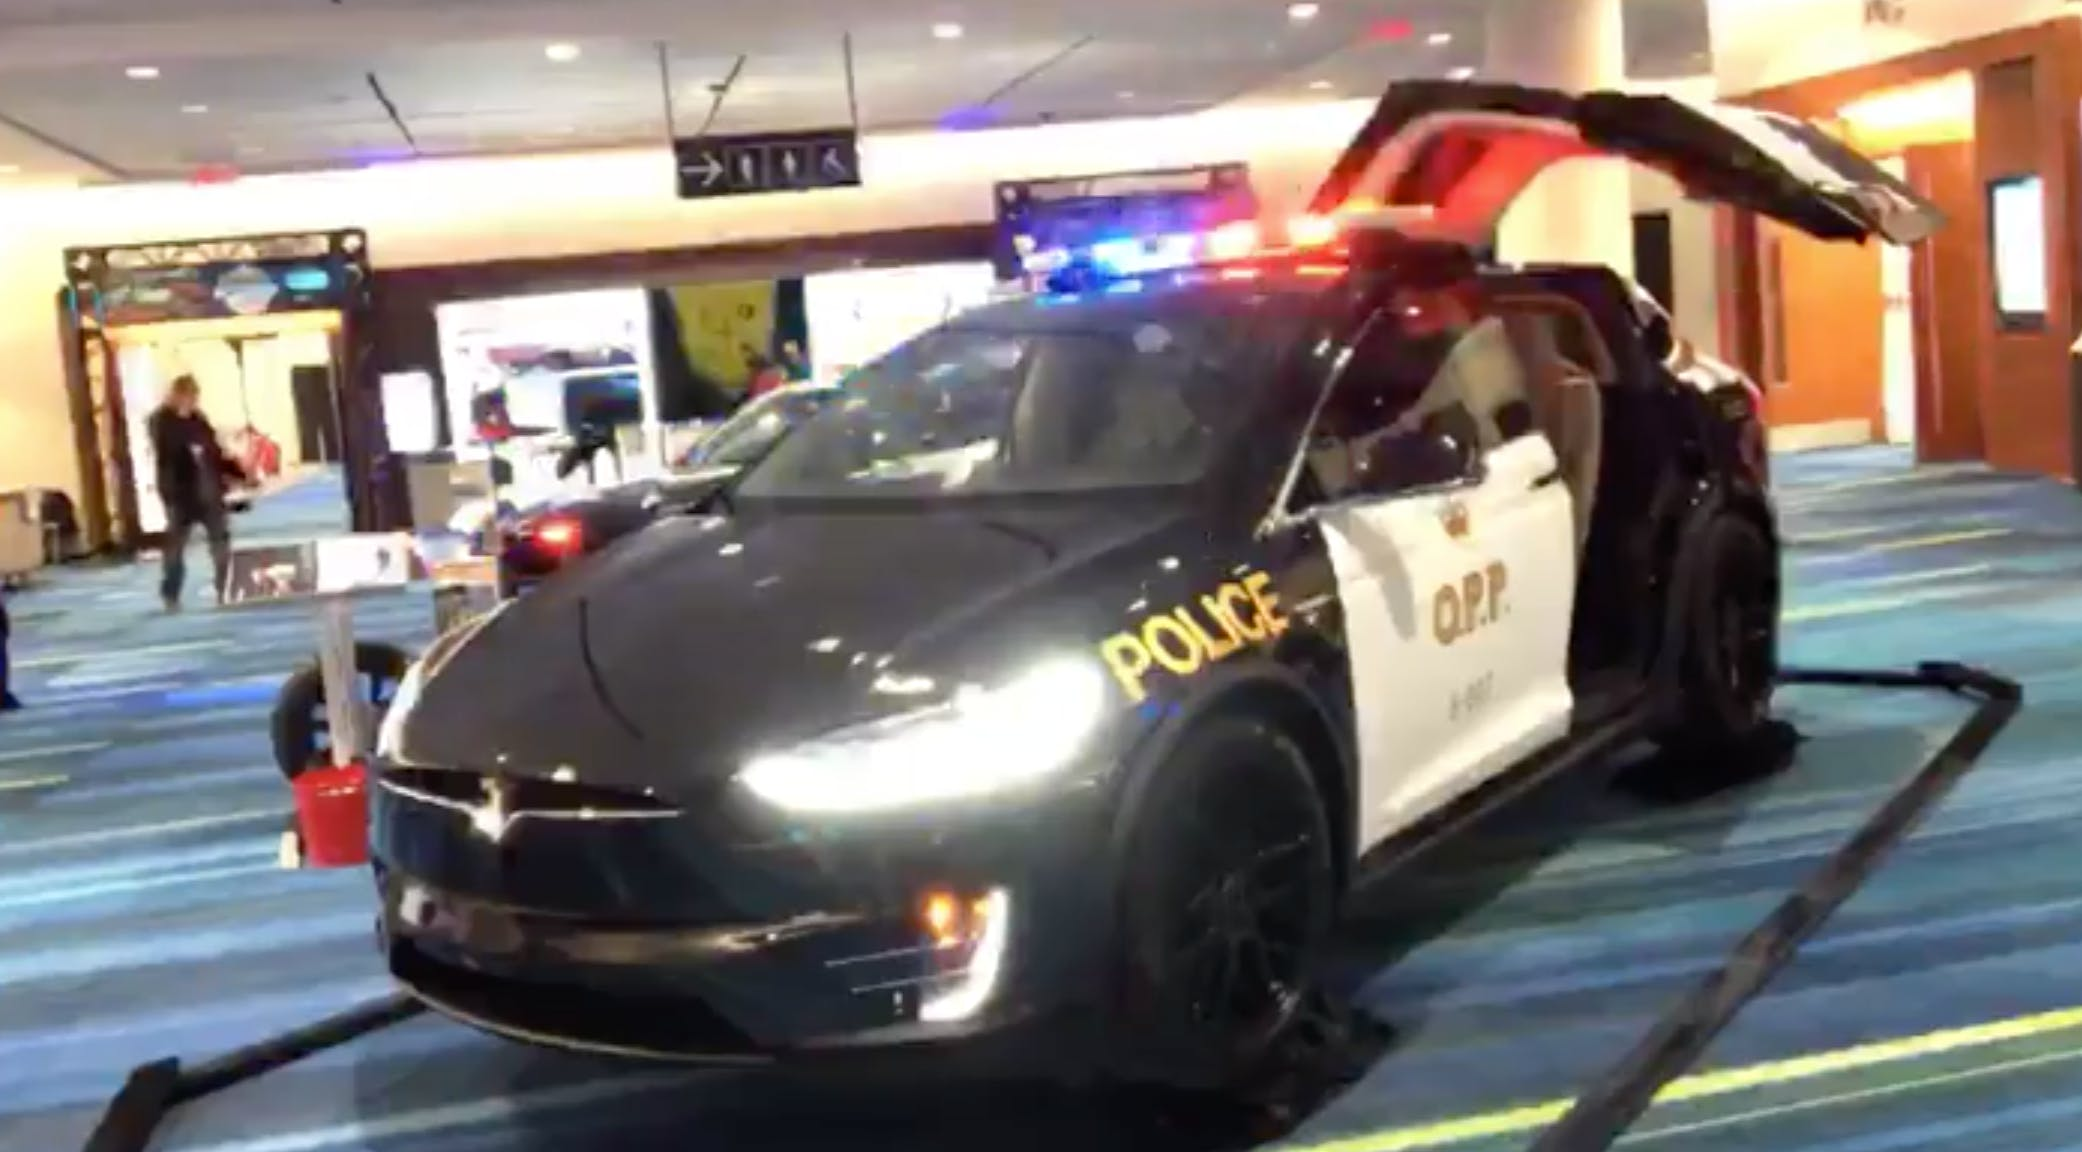 Ontario S Next Police Car Could Be A Tesla Model X Inverse